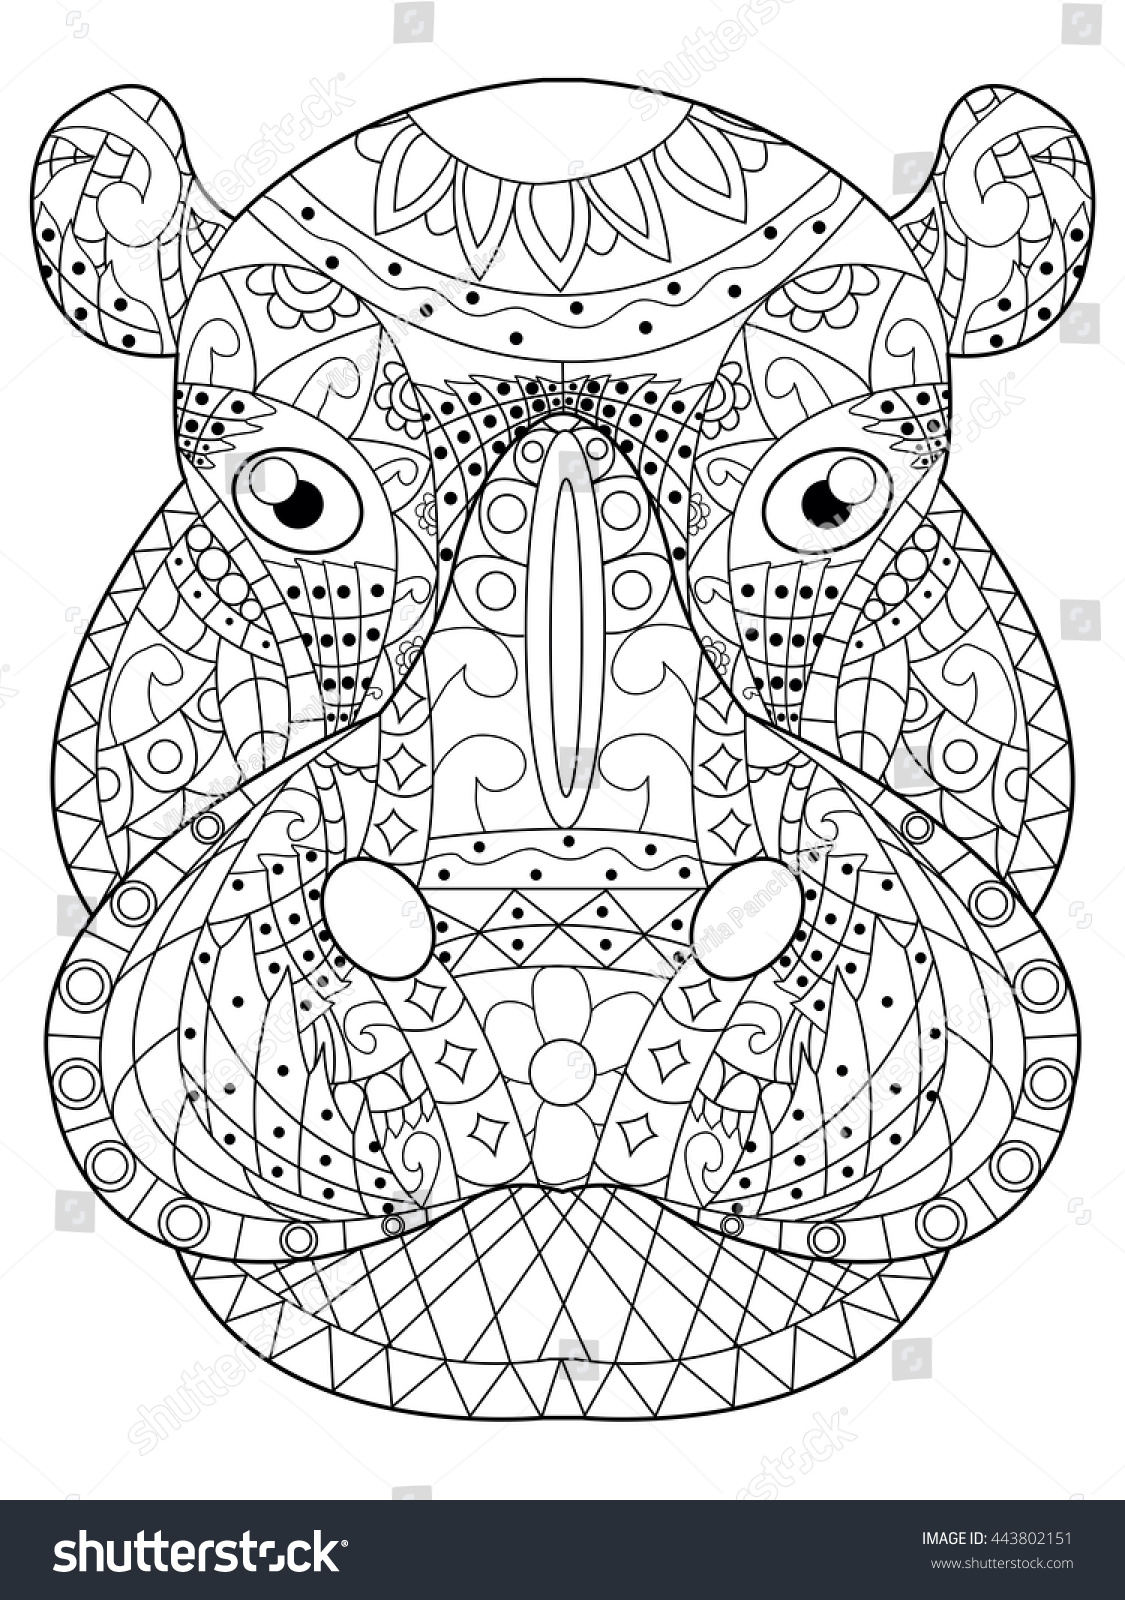 Hippopotamus Head Coloring Book For Adults Vector Illustration Anti Stress Adult